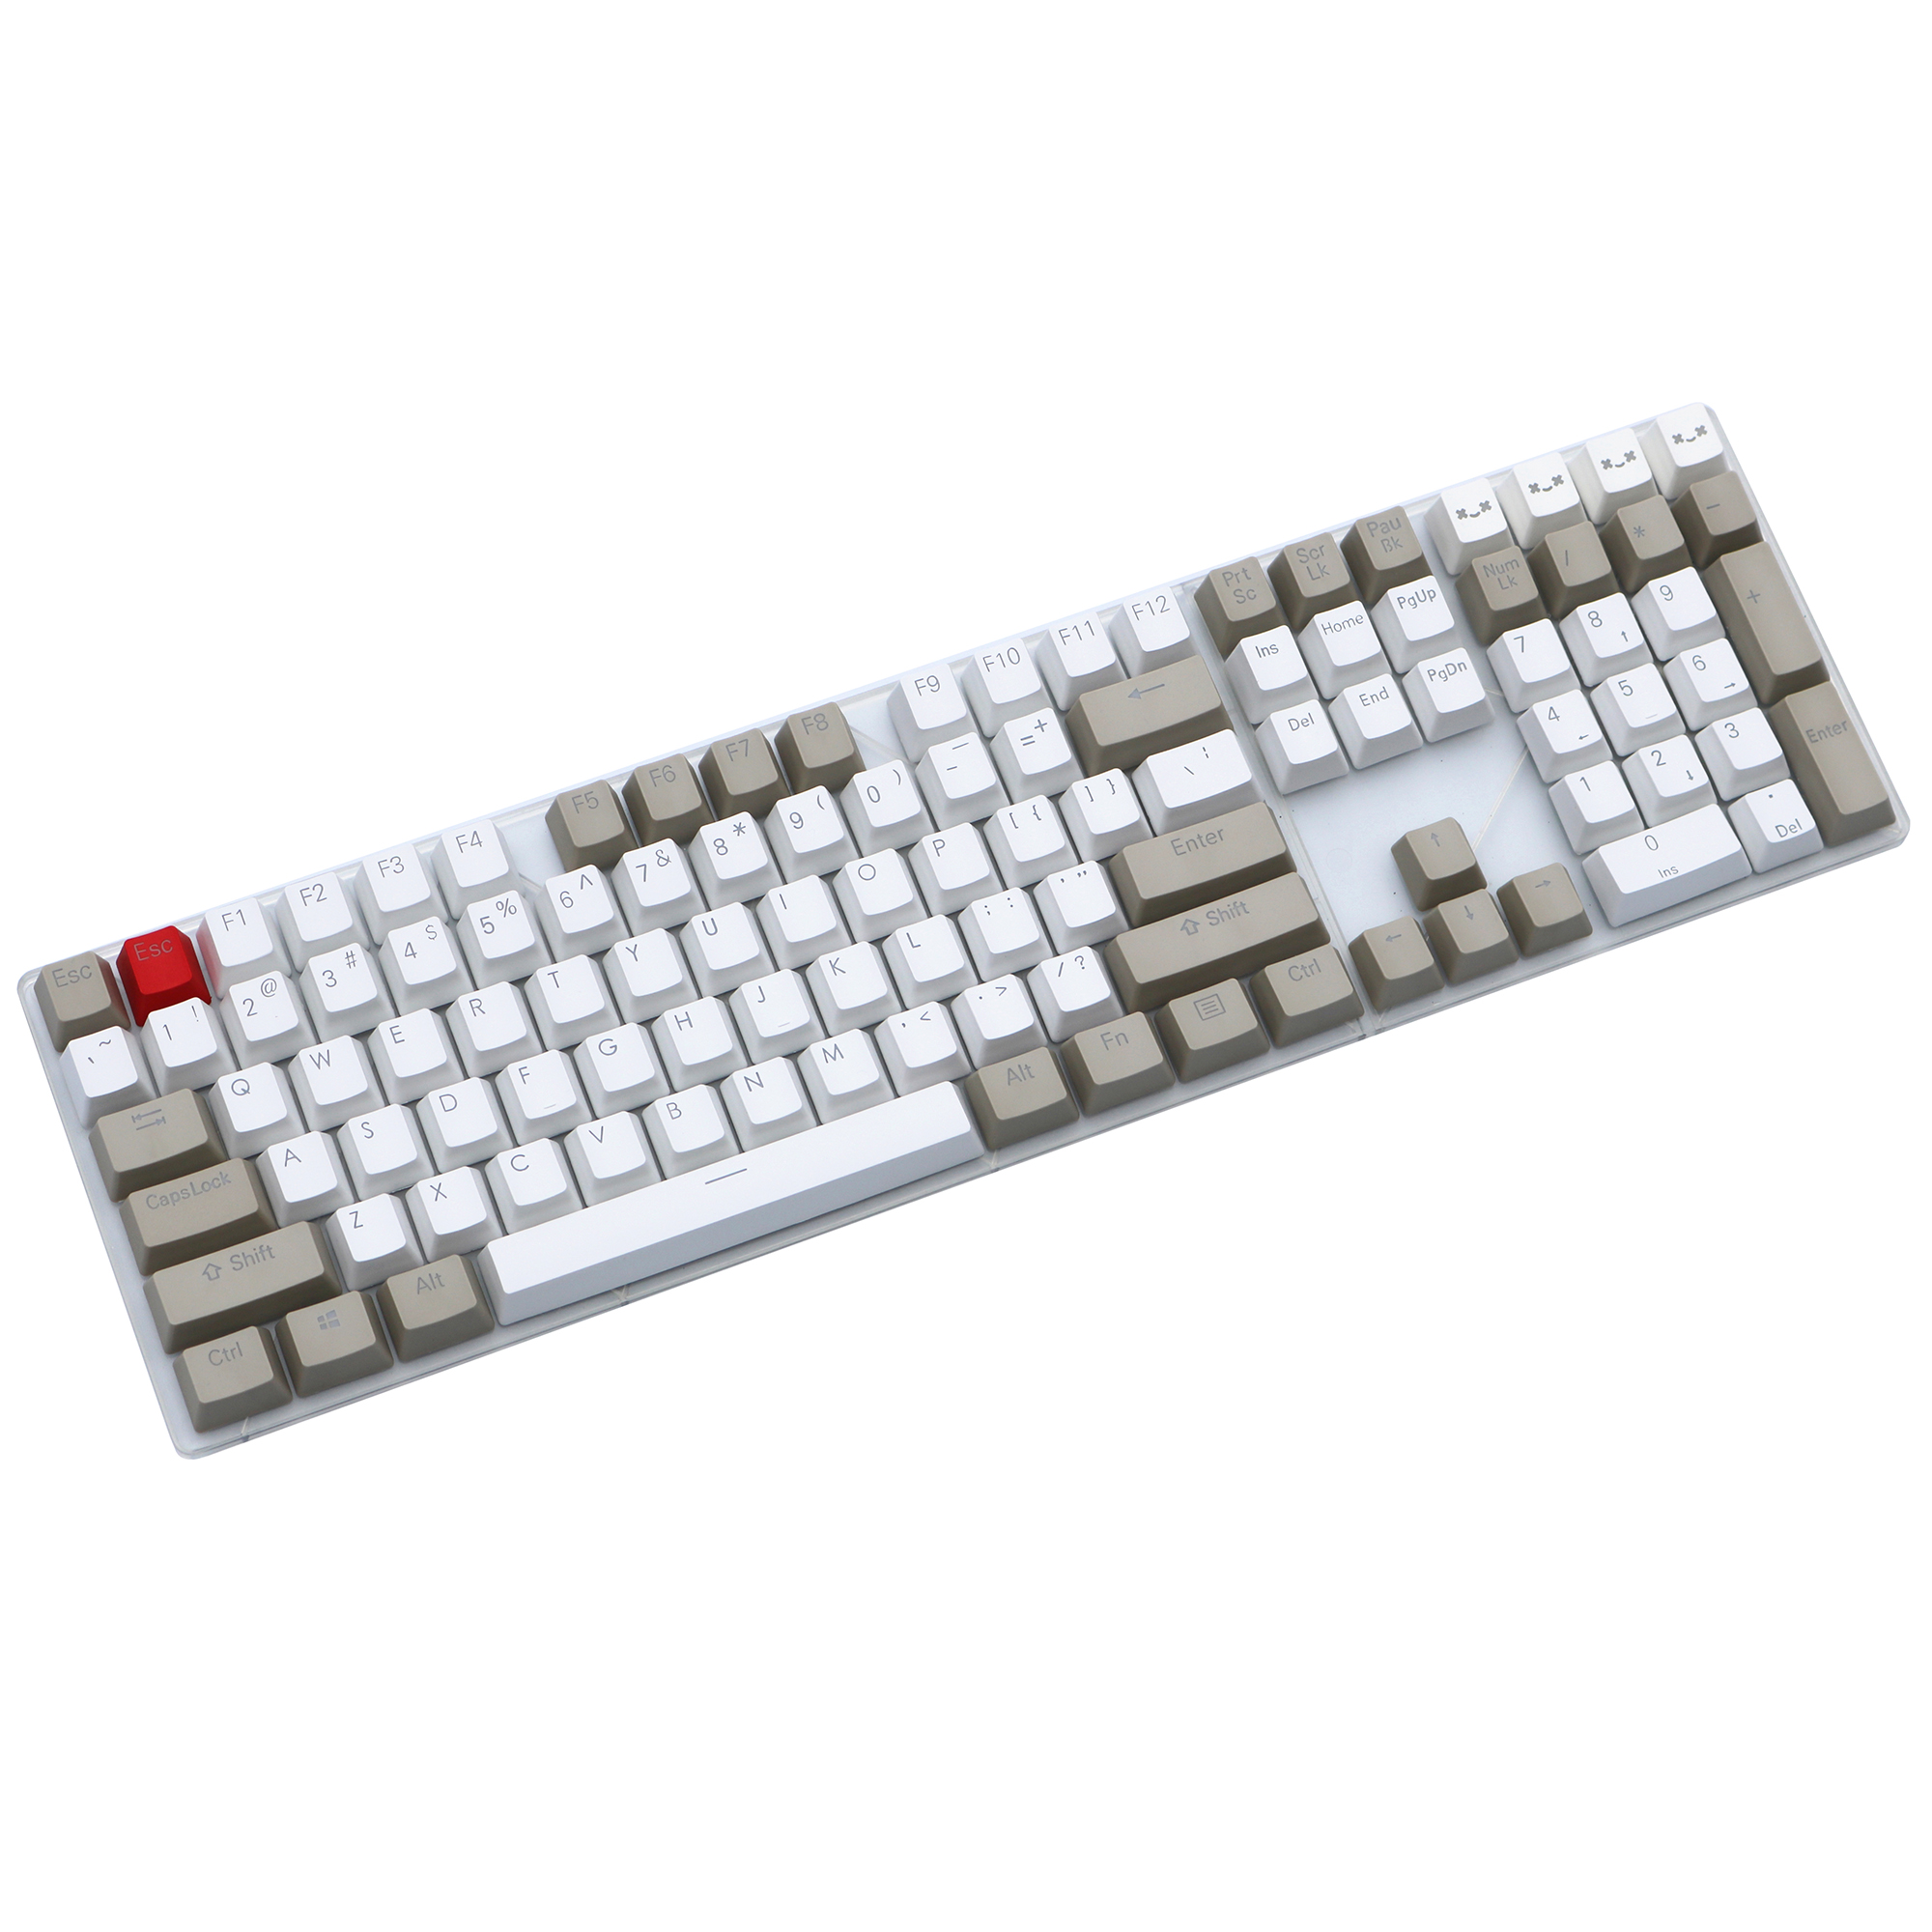 Gray White 87/104 Keys Double-shot Backlit PBT Keycap OEM Profile MX Switch For Cherry/NOPPOO/Flick/Ikbc Only Sell Keycaps